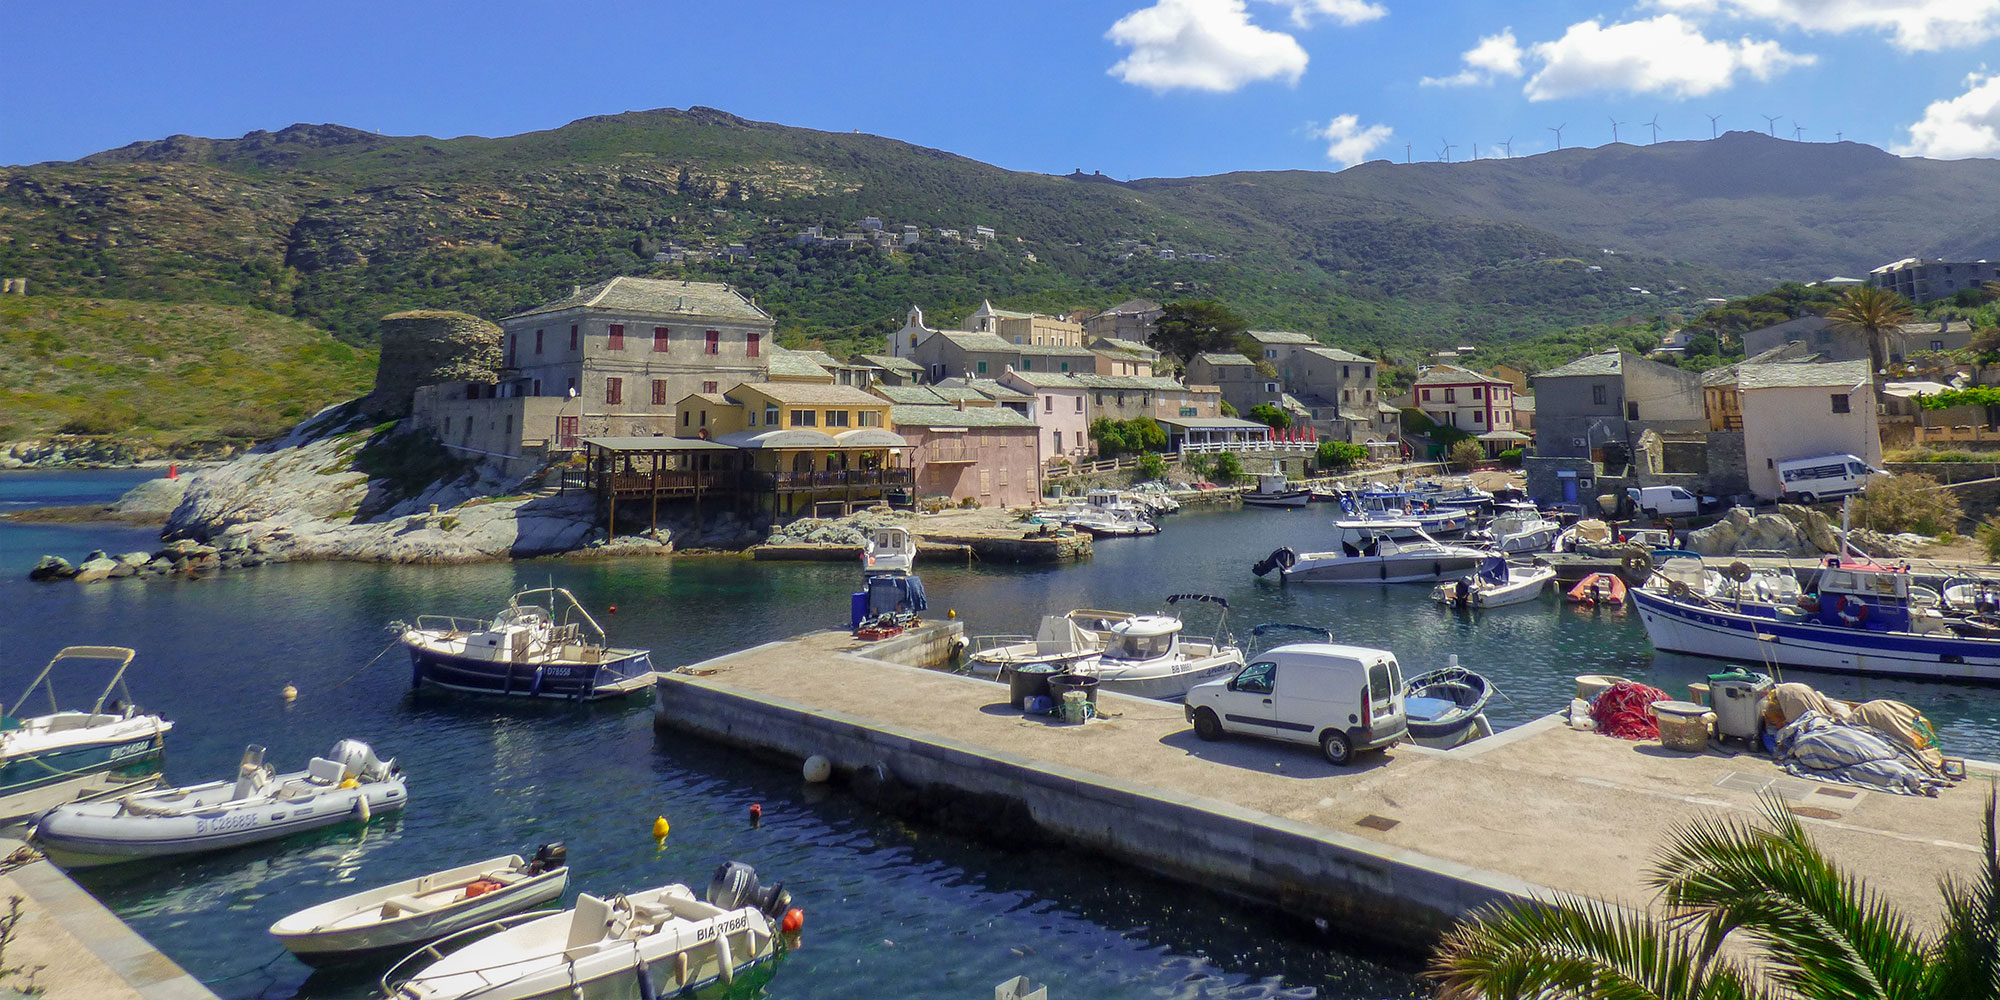 Centuri, village of Cap Corse with its small fishing port famous for lobster fishing.